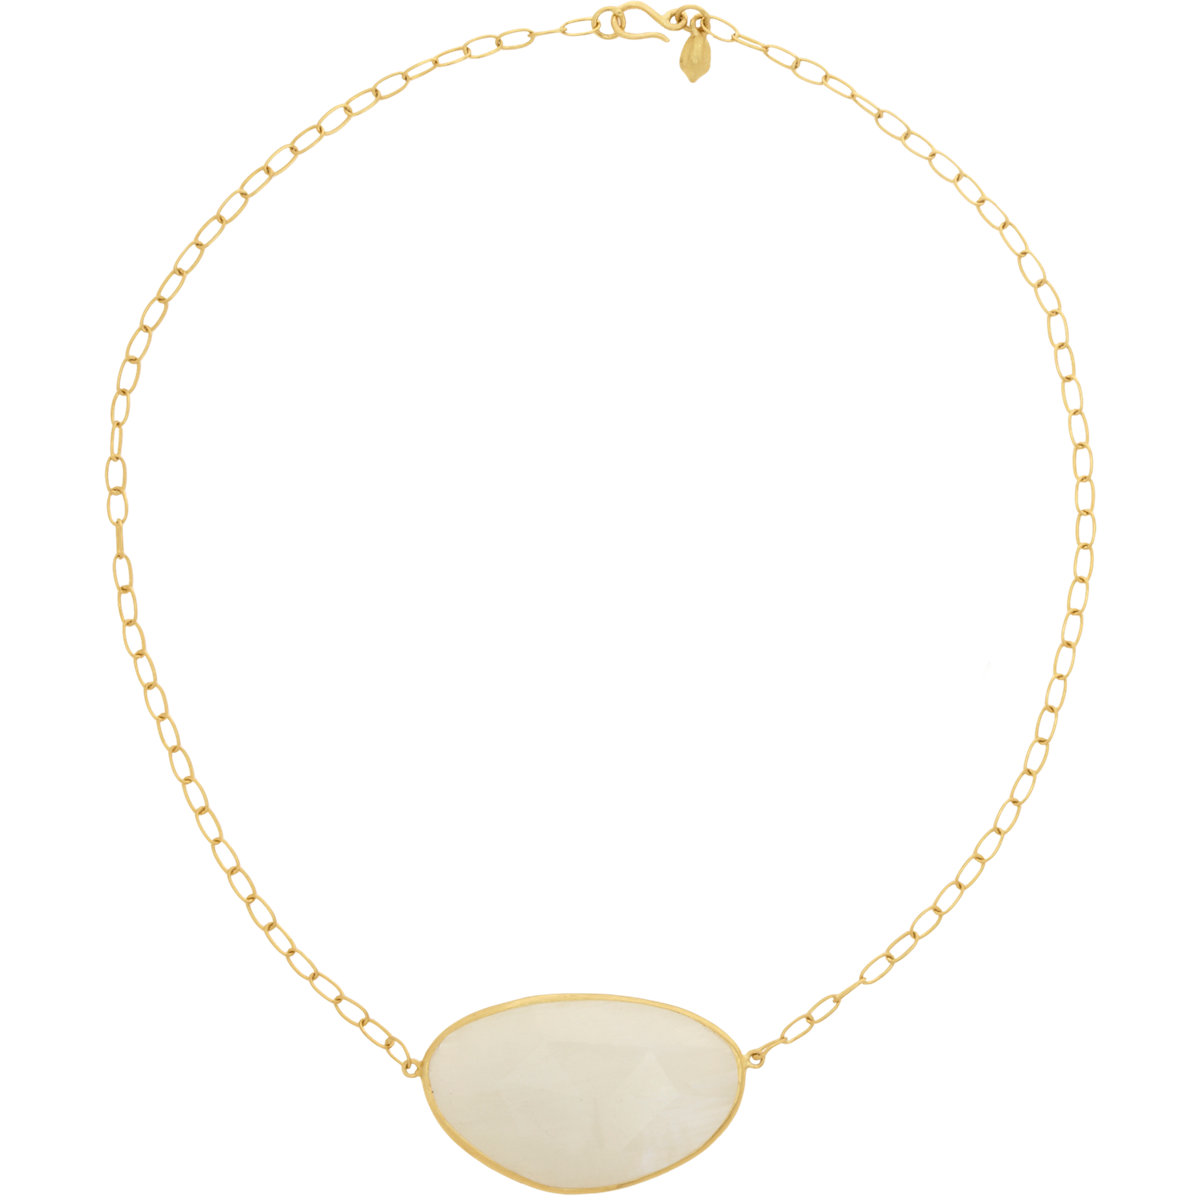 Moonstone Necklaces: Pippa Small Rainbow Moonstone Pendant Necklace In White